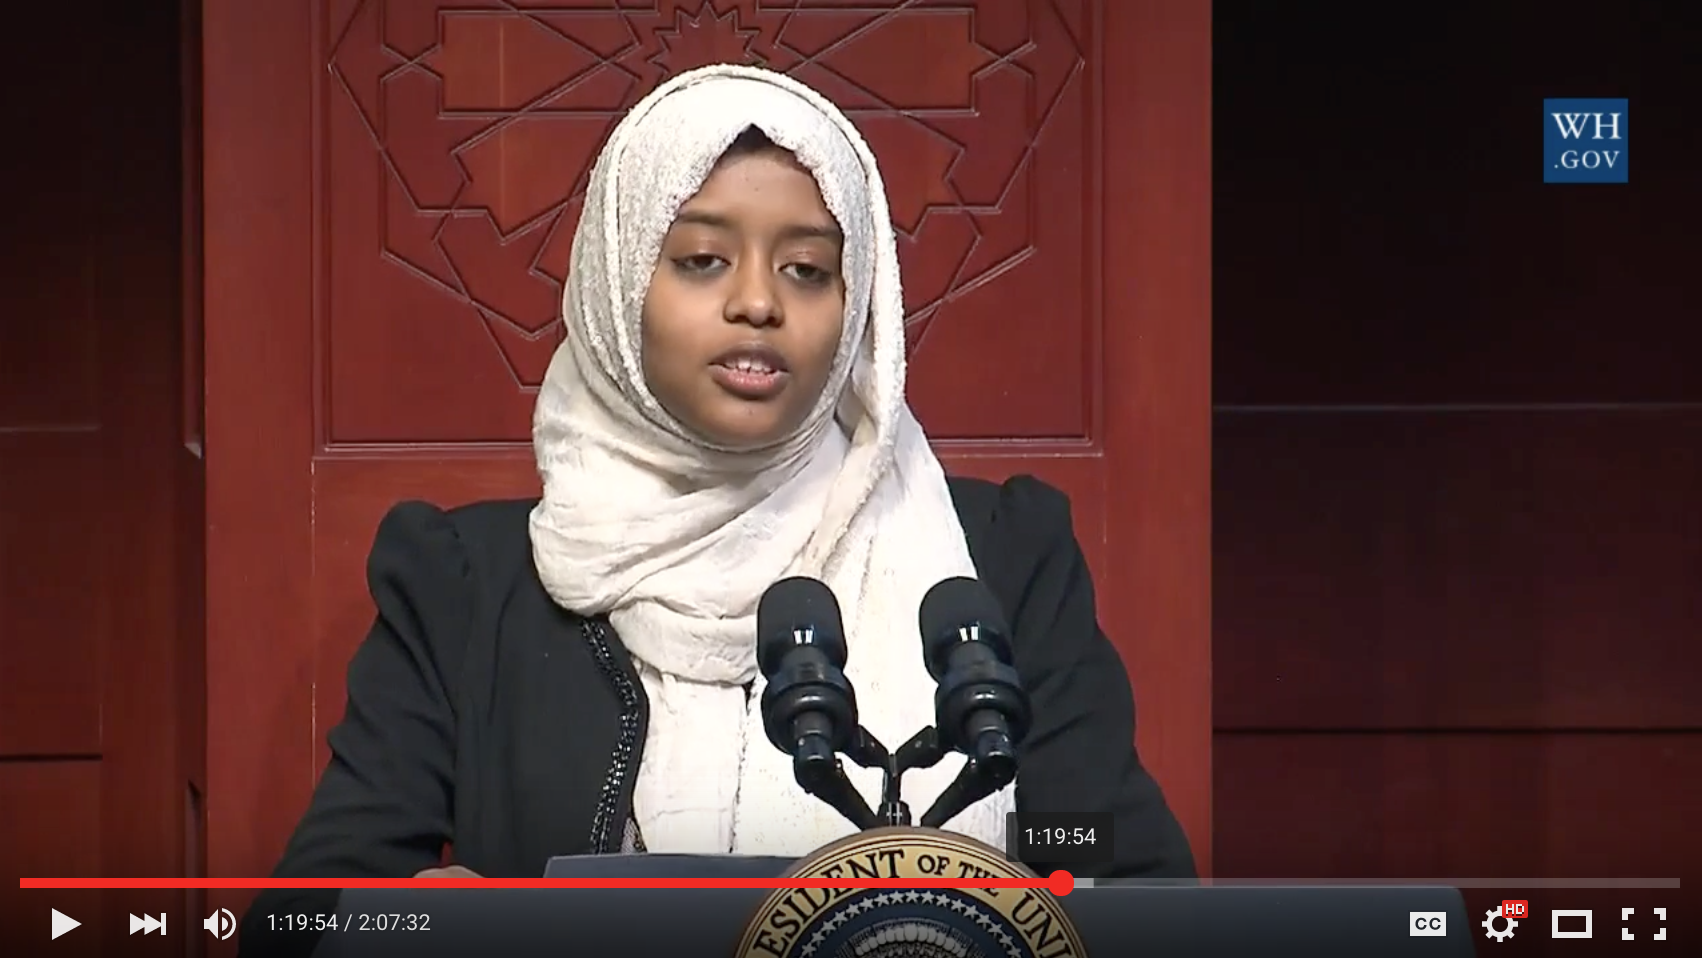 University Of Maryland-Baltimore Student Sabah Muktar Gives A Powerful Speech While Introducing President Barack Obama During His Visit To A Baltimore Mosque On Feb. 3, 2016. Screenshot Of White House Video On YouTube.